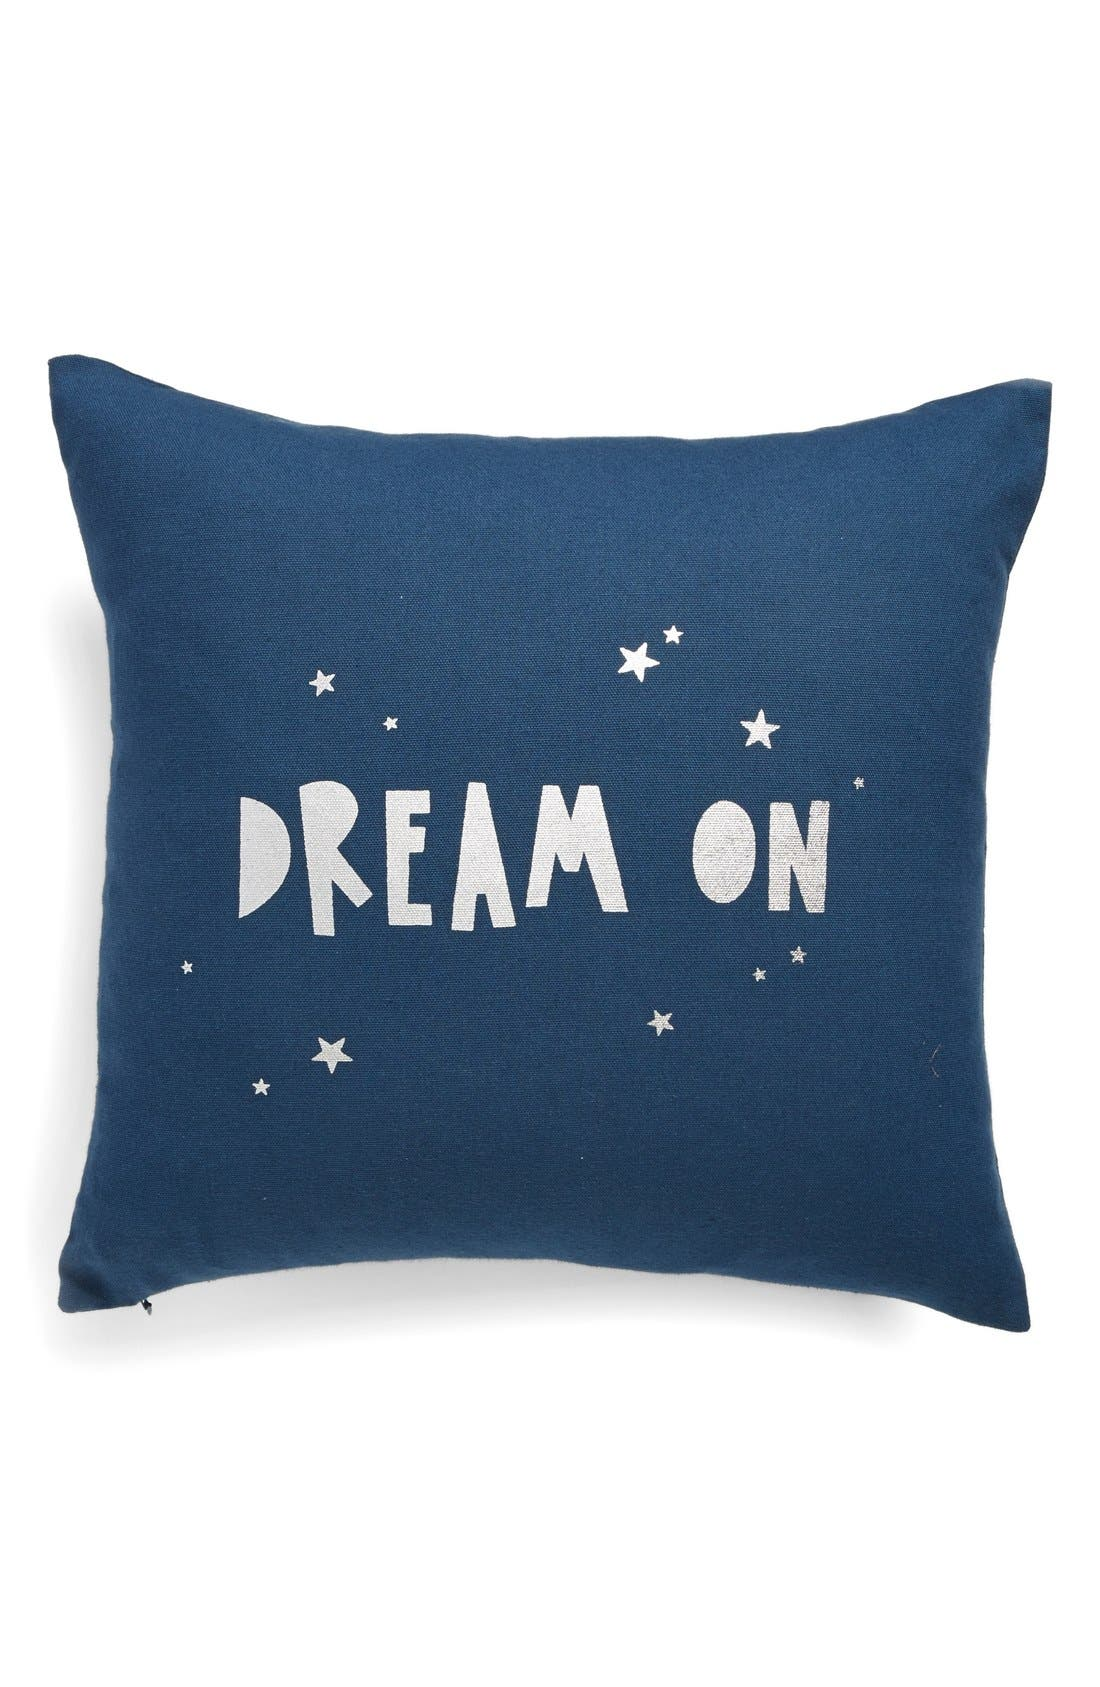 Alternate Image 1 Selected - Nordstrom at Home 'Dream On' Square Accent Pillow